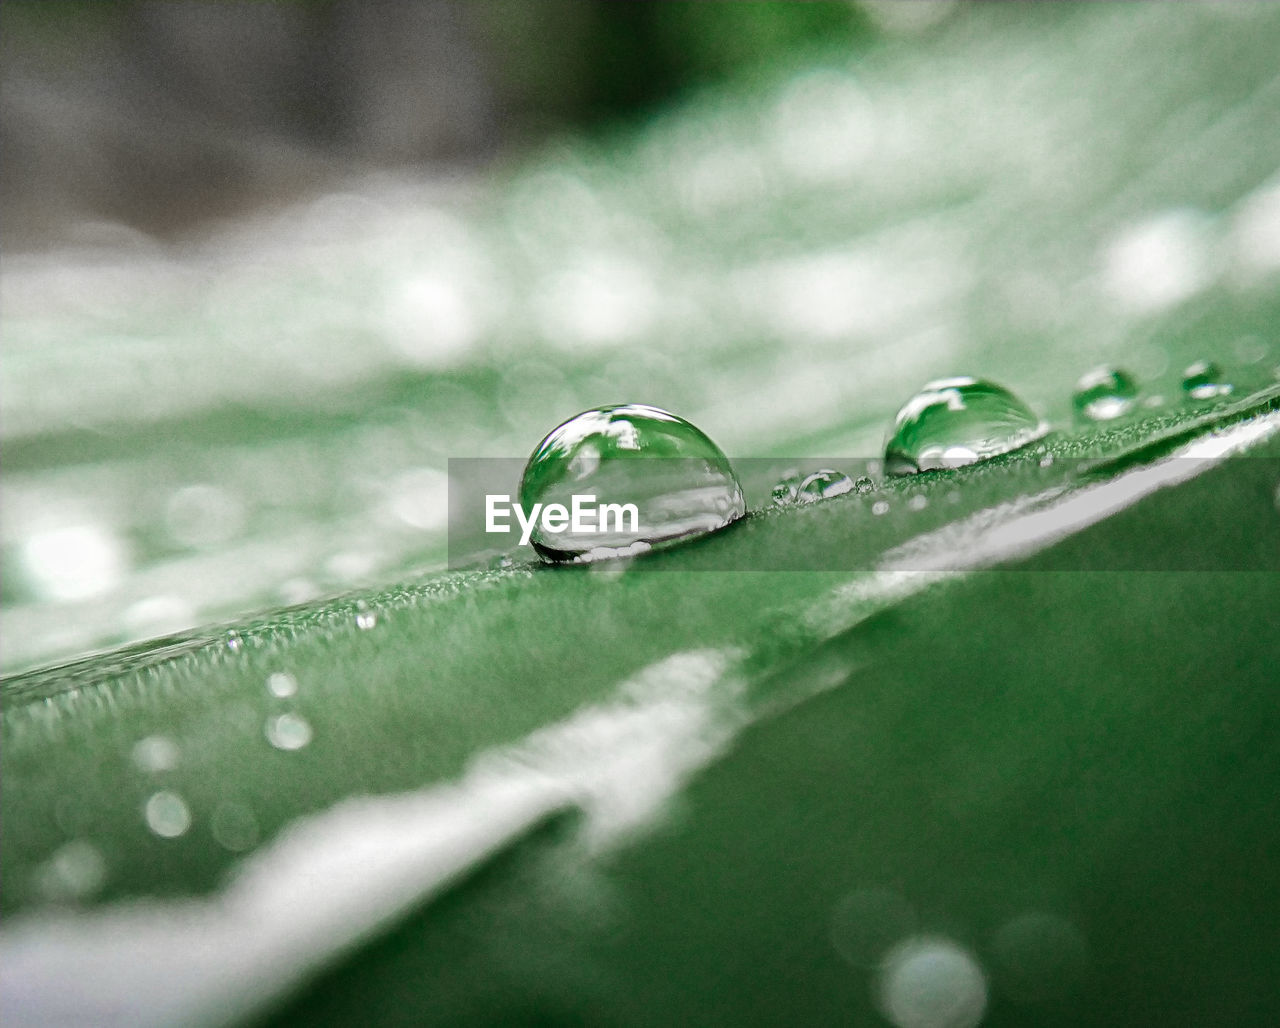 drop, wet, water, selective focus, close-up, purity, freshness, no people, vulnerability, beauty in nature, fragility, nature, leaf, green color, plant part, dew, rain, plant, raindrop, outdoors, blade of grass, surface level, rainy season